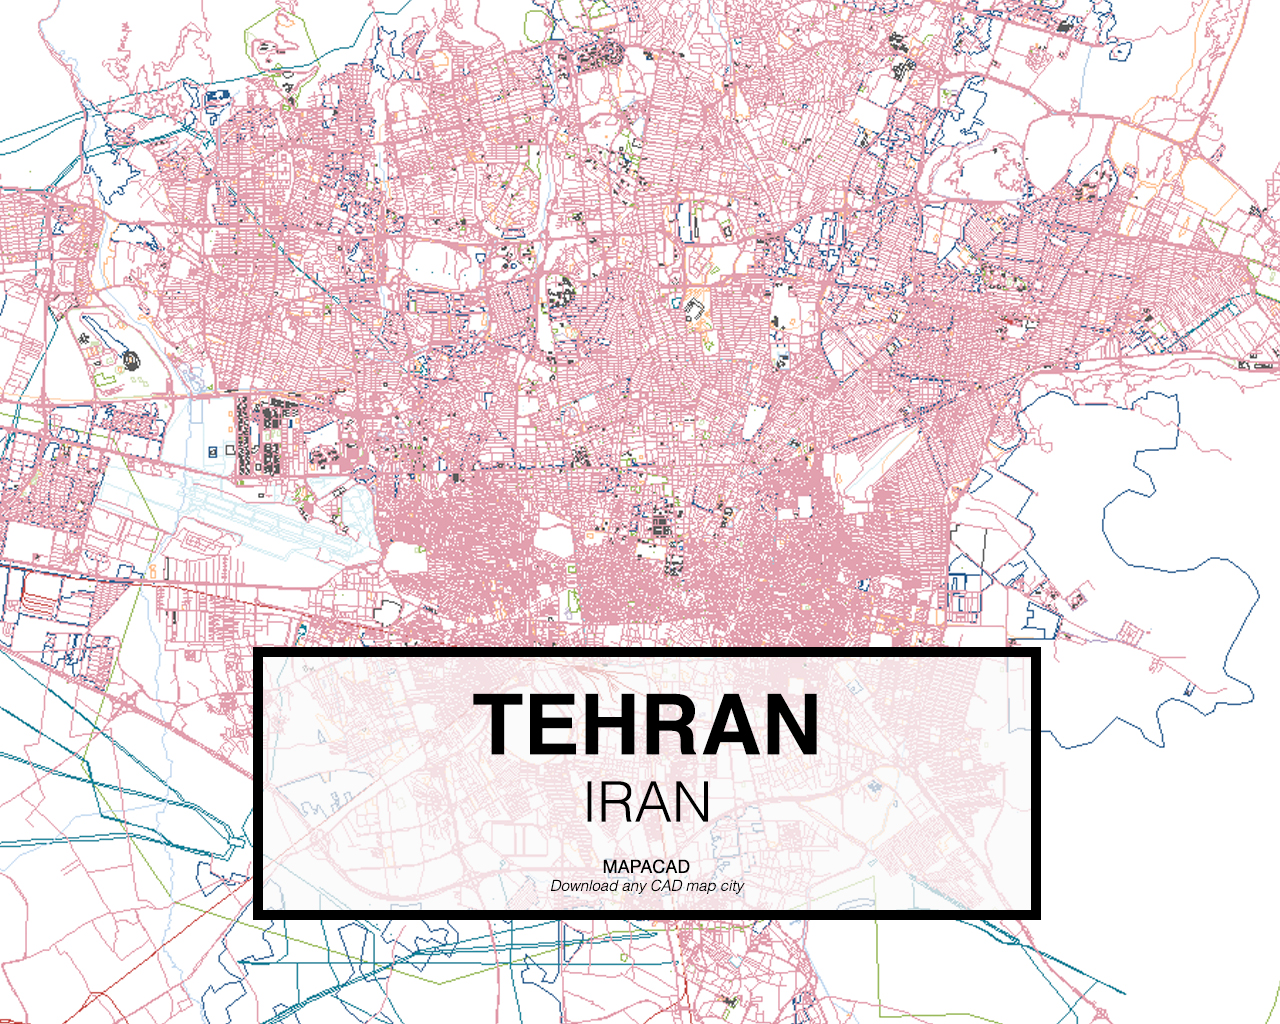 tehran iran 01 mapacad download map cad dwg